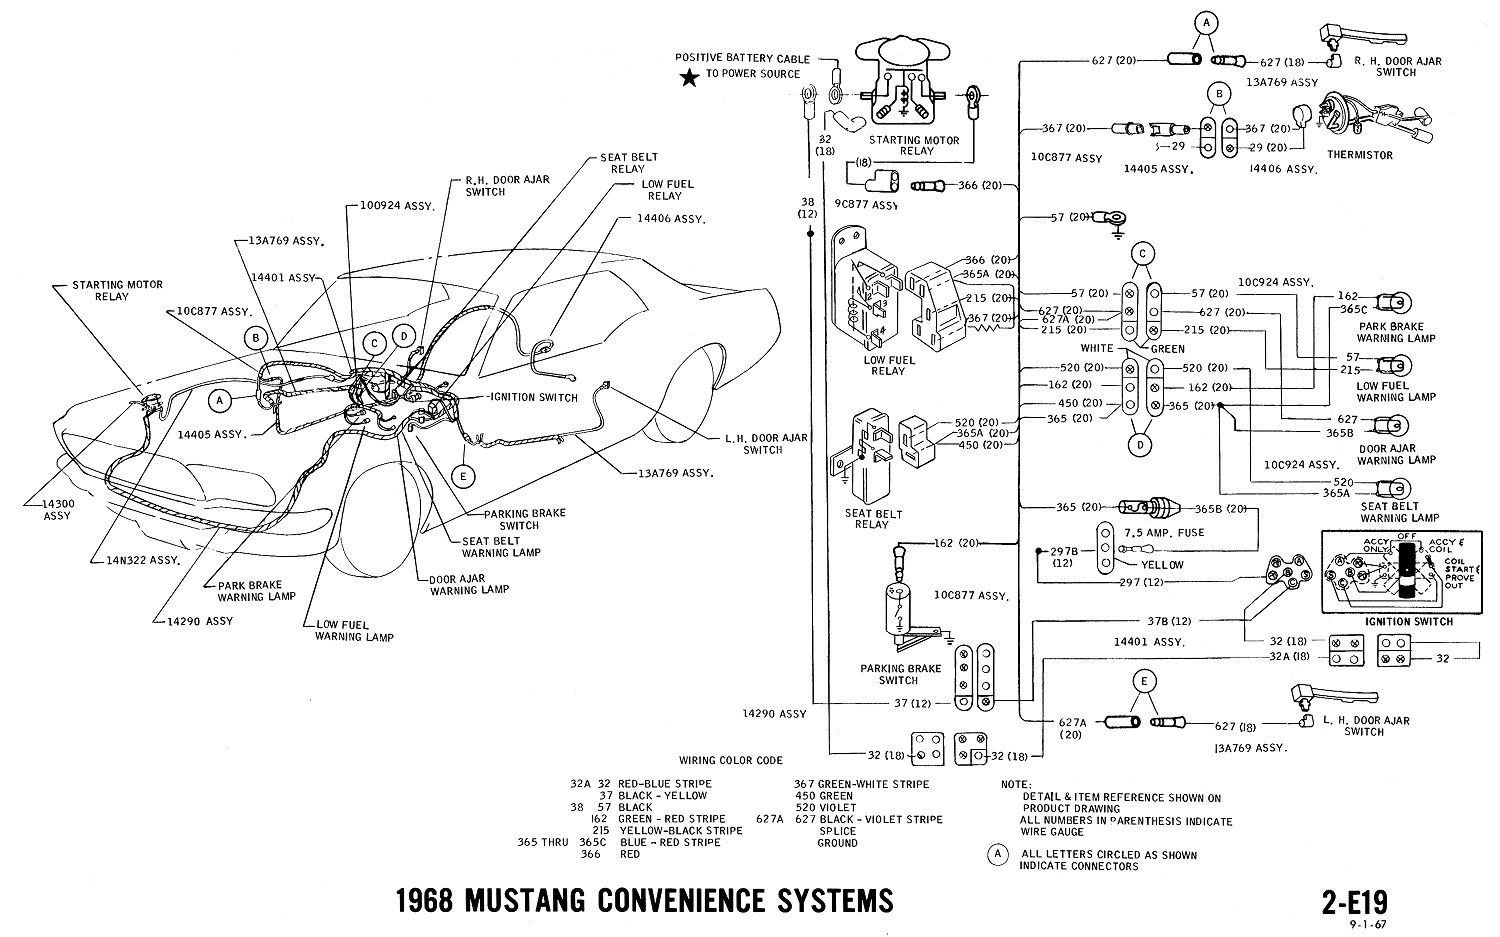 1968 mustang wiring diagrams and vacuum schematics average joe 1968 mustang wiring diagram convenience systems sciox Gallery